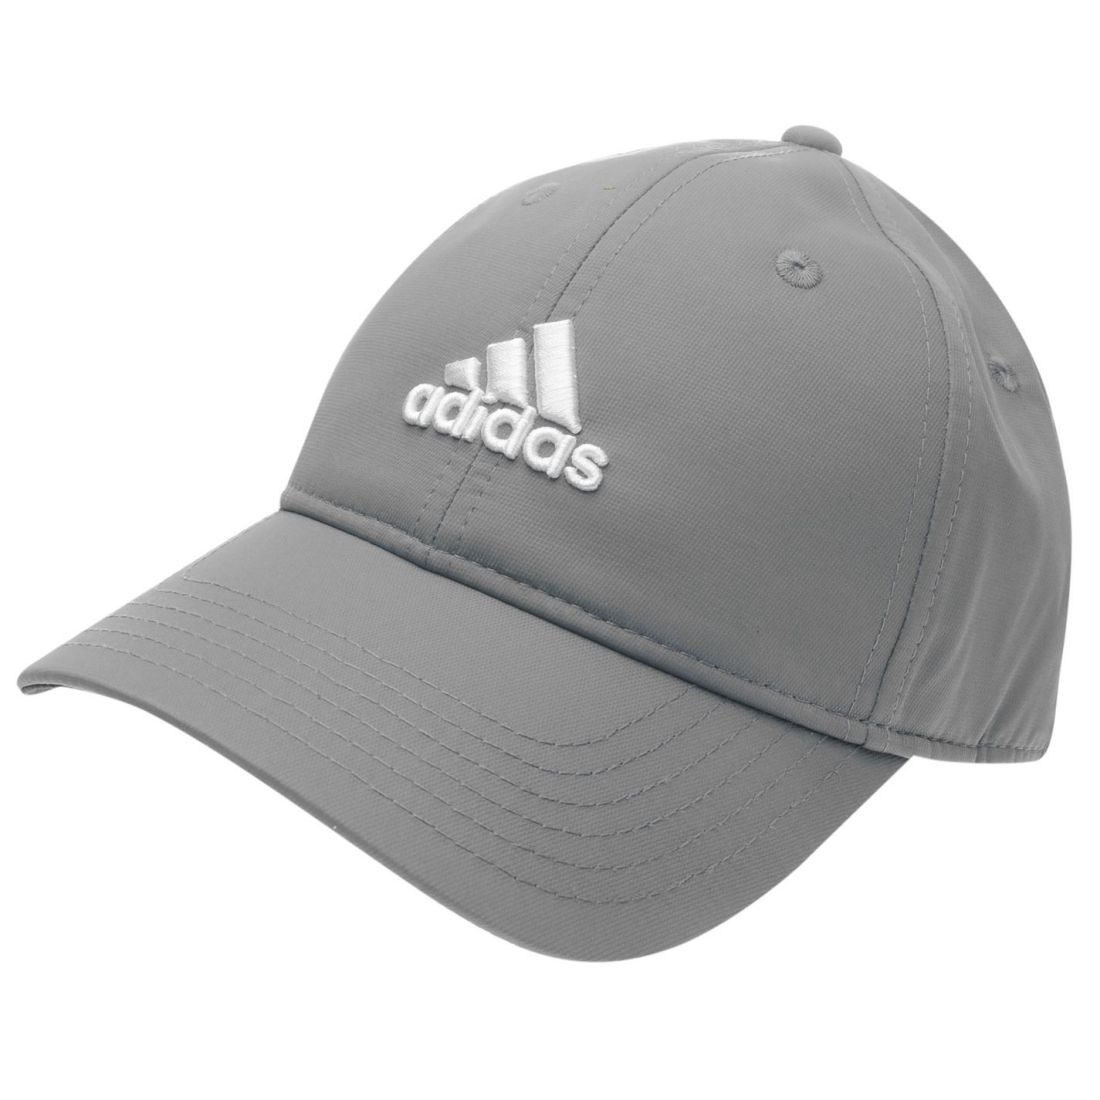 adidas Mens Golf Sports Flexible Peak Cap Hat Touch And Close Brand ... 212a28a32184